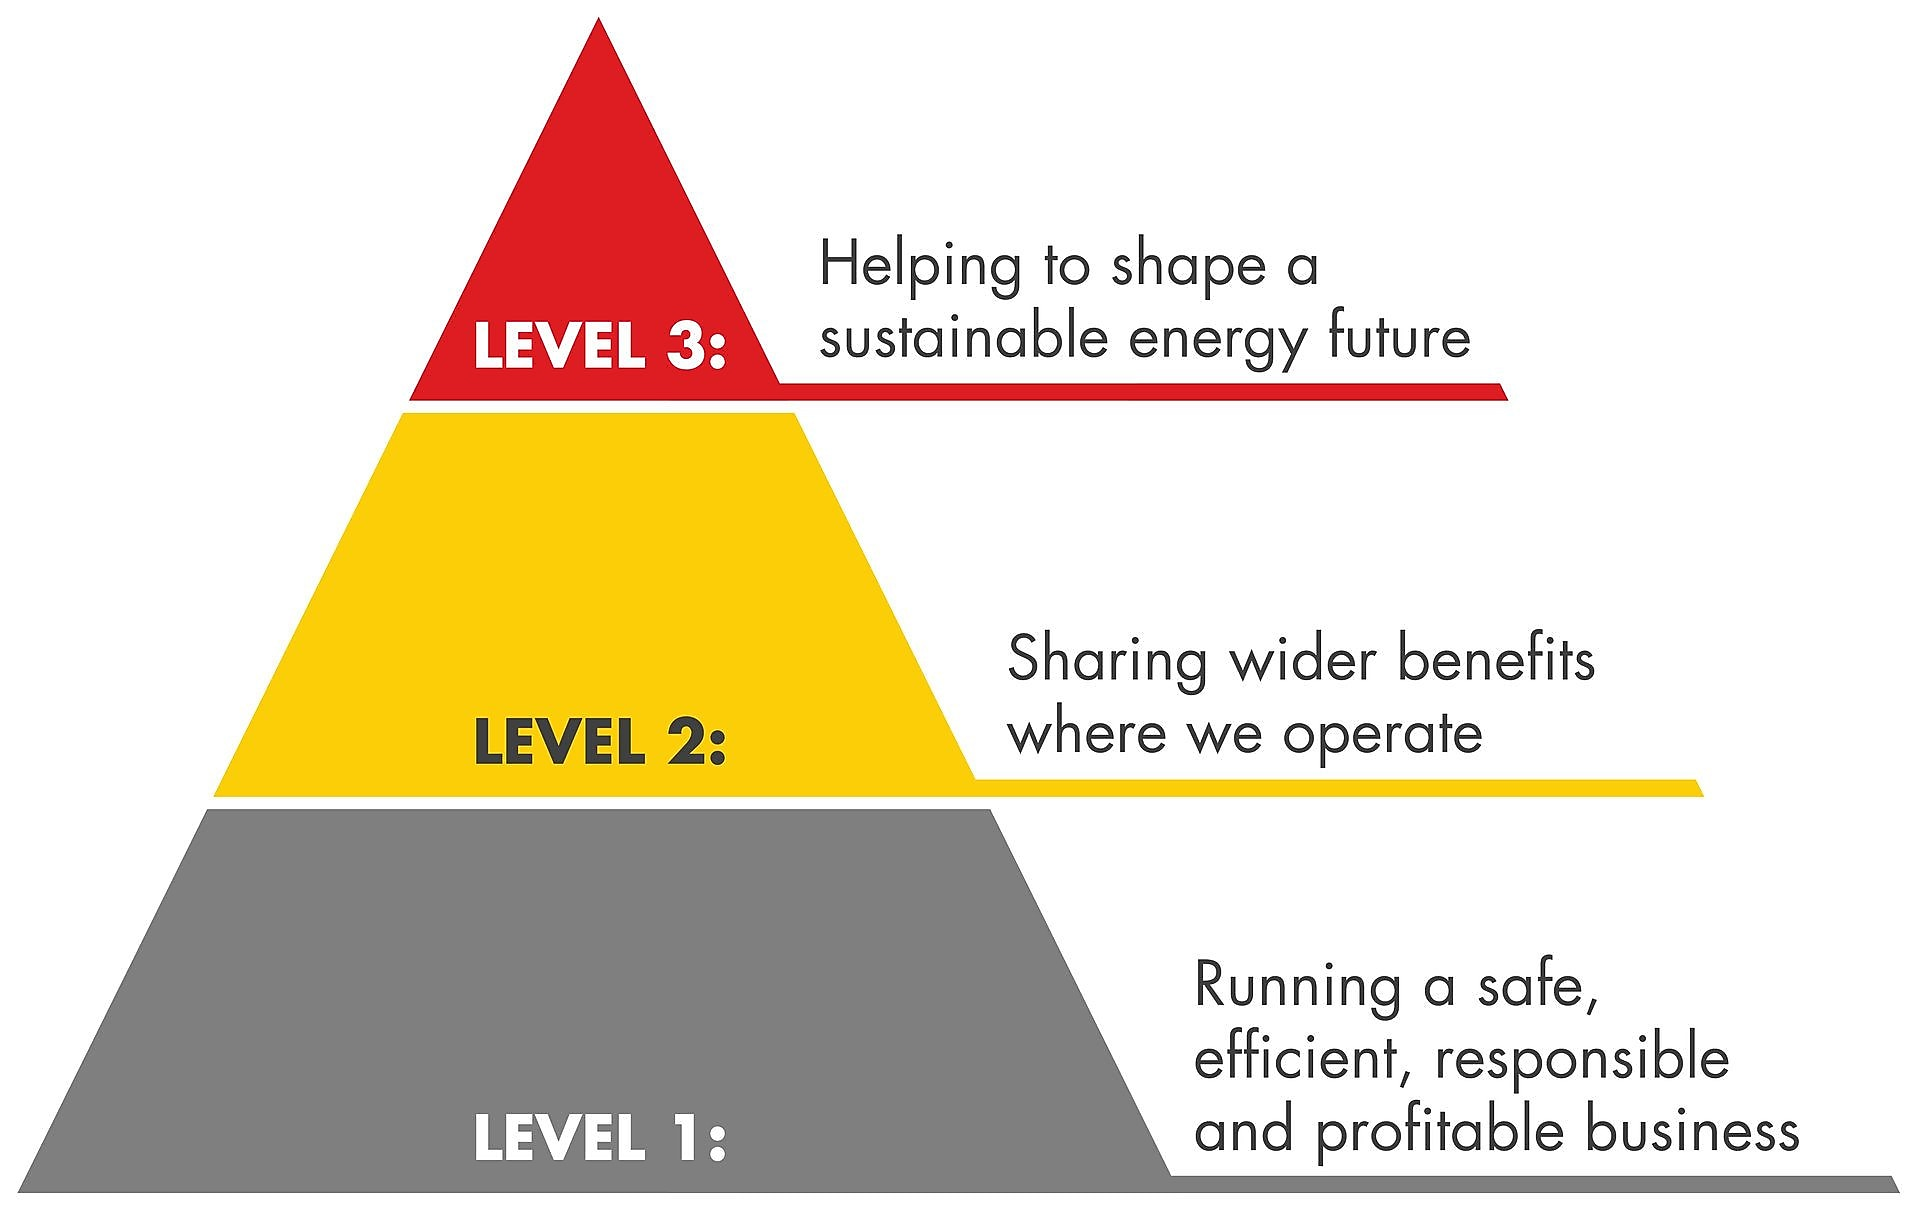 A triangle showing 3 levels of Shell's approach to sustainability. Level 1: Running a safe, efficient, responsible and profitable business; Level 2: Sharing wider benefits where we operate; Level 3: Helping to shape a sustainable energy future